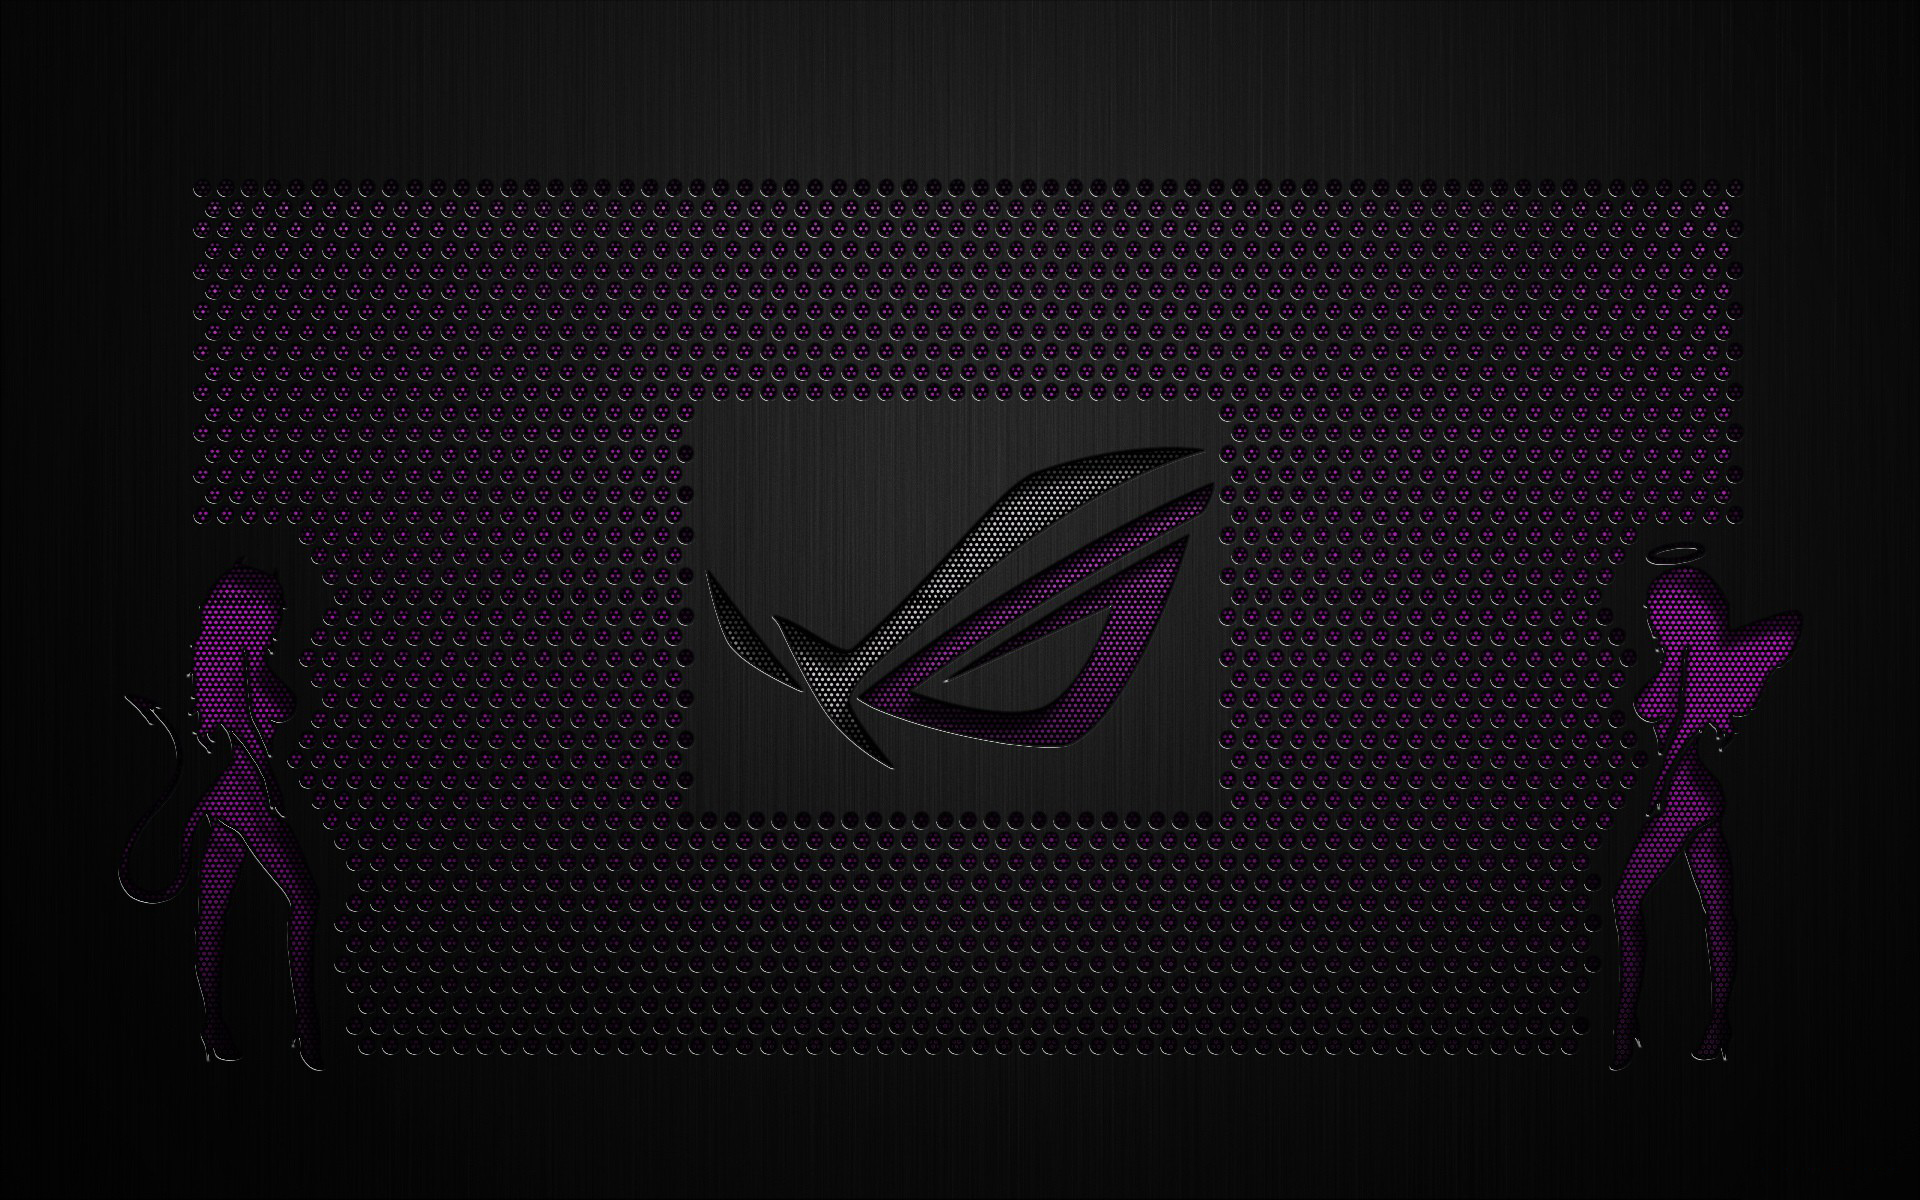 Asus Black Wallpaper: Asus Wallpapers, Pictures, Images